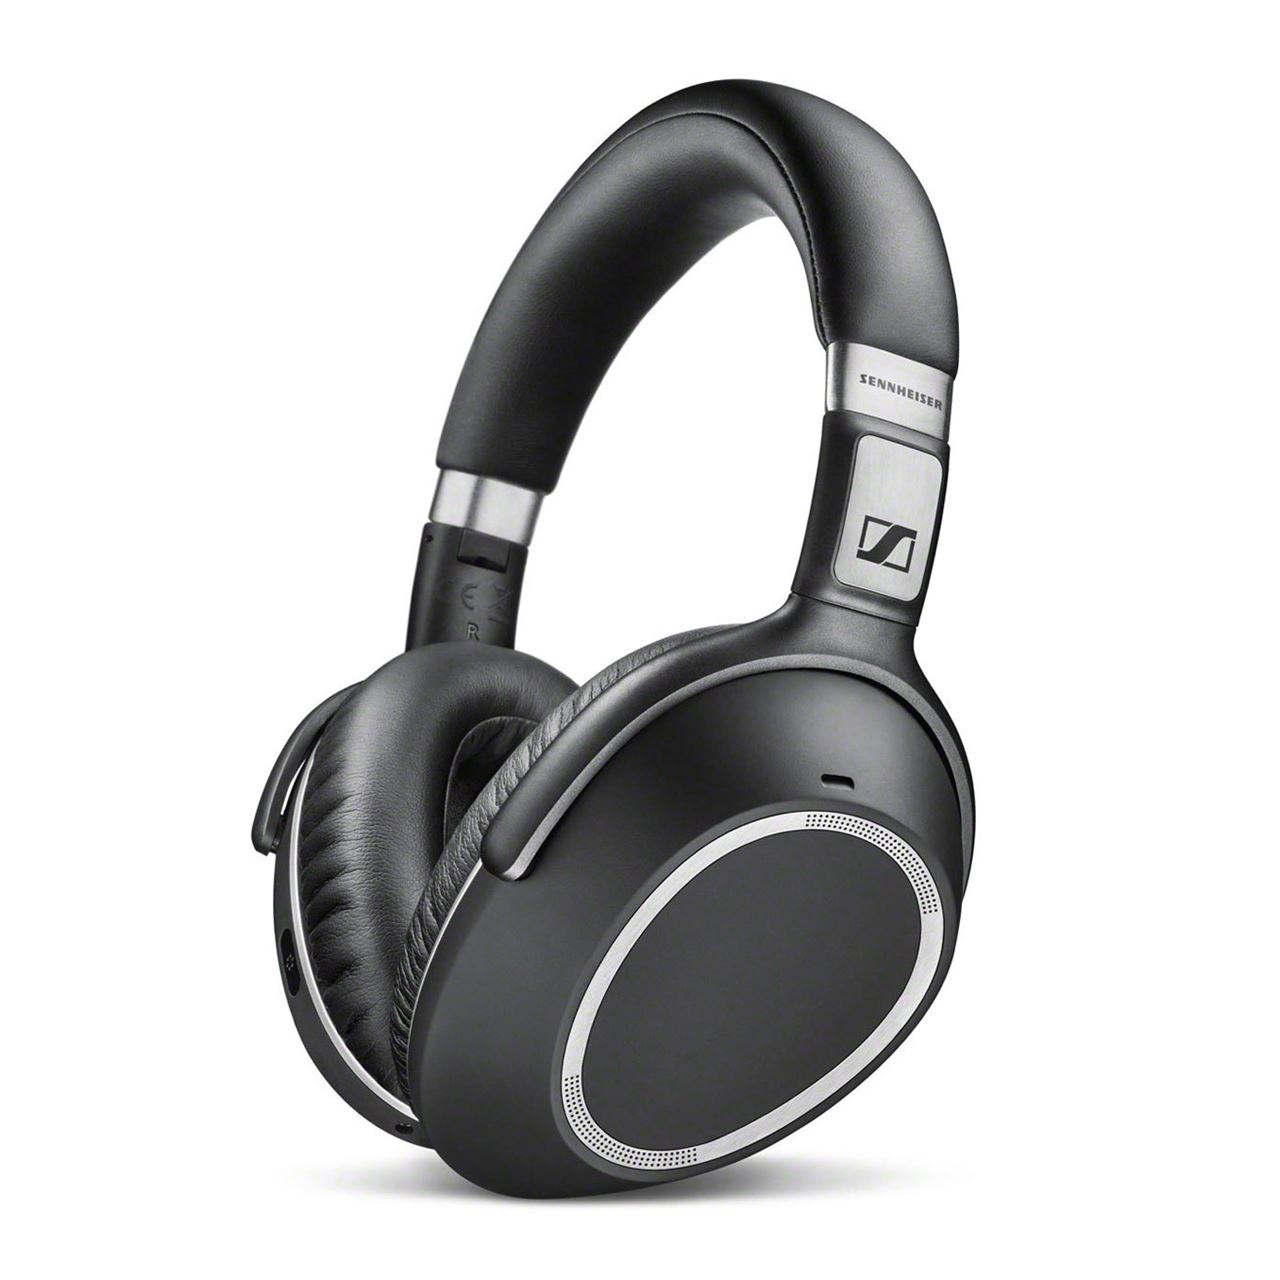 Picture of Sennheiser PXC 550 wireless bluetooth headset